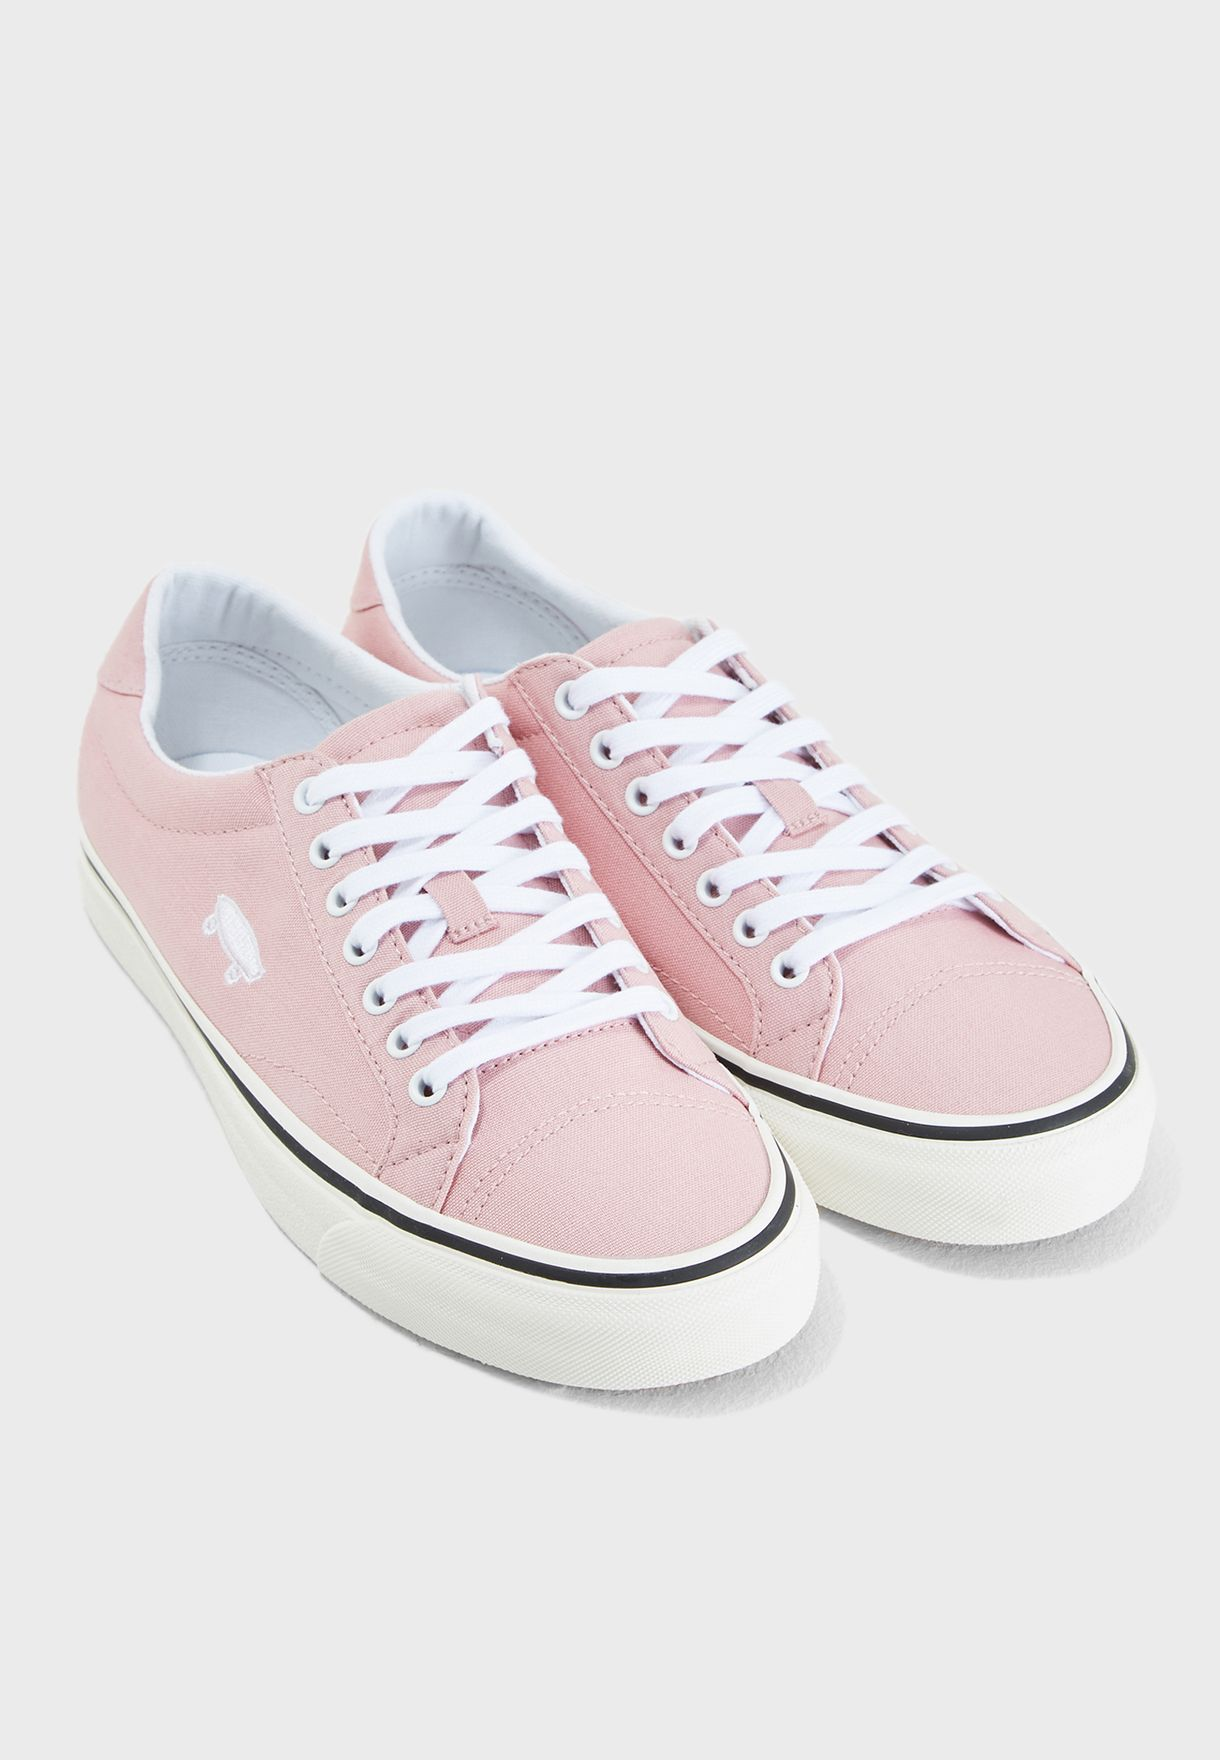 32ef4a981639b6 Shop Vans pink Court Icon JF2RG0 for Women in Saudi ...